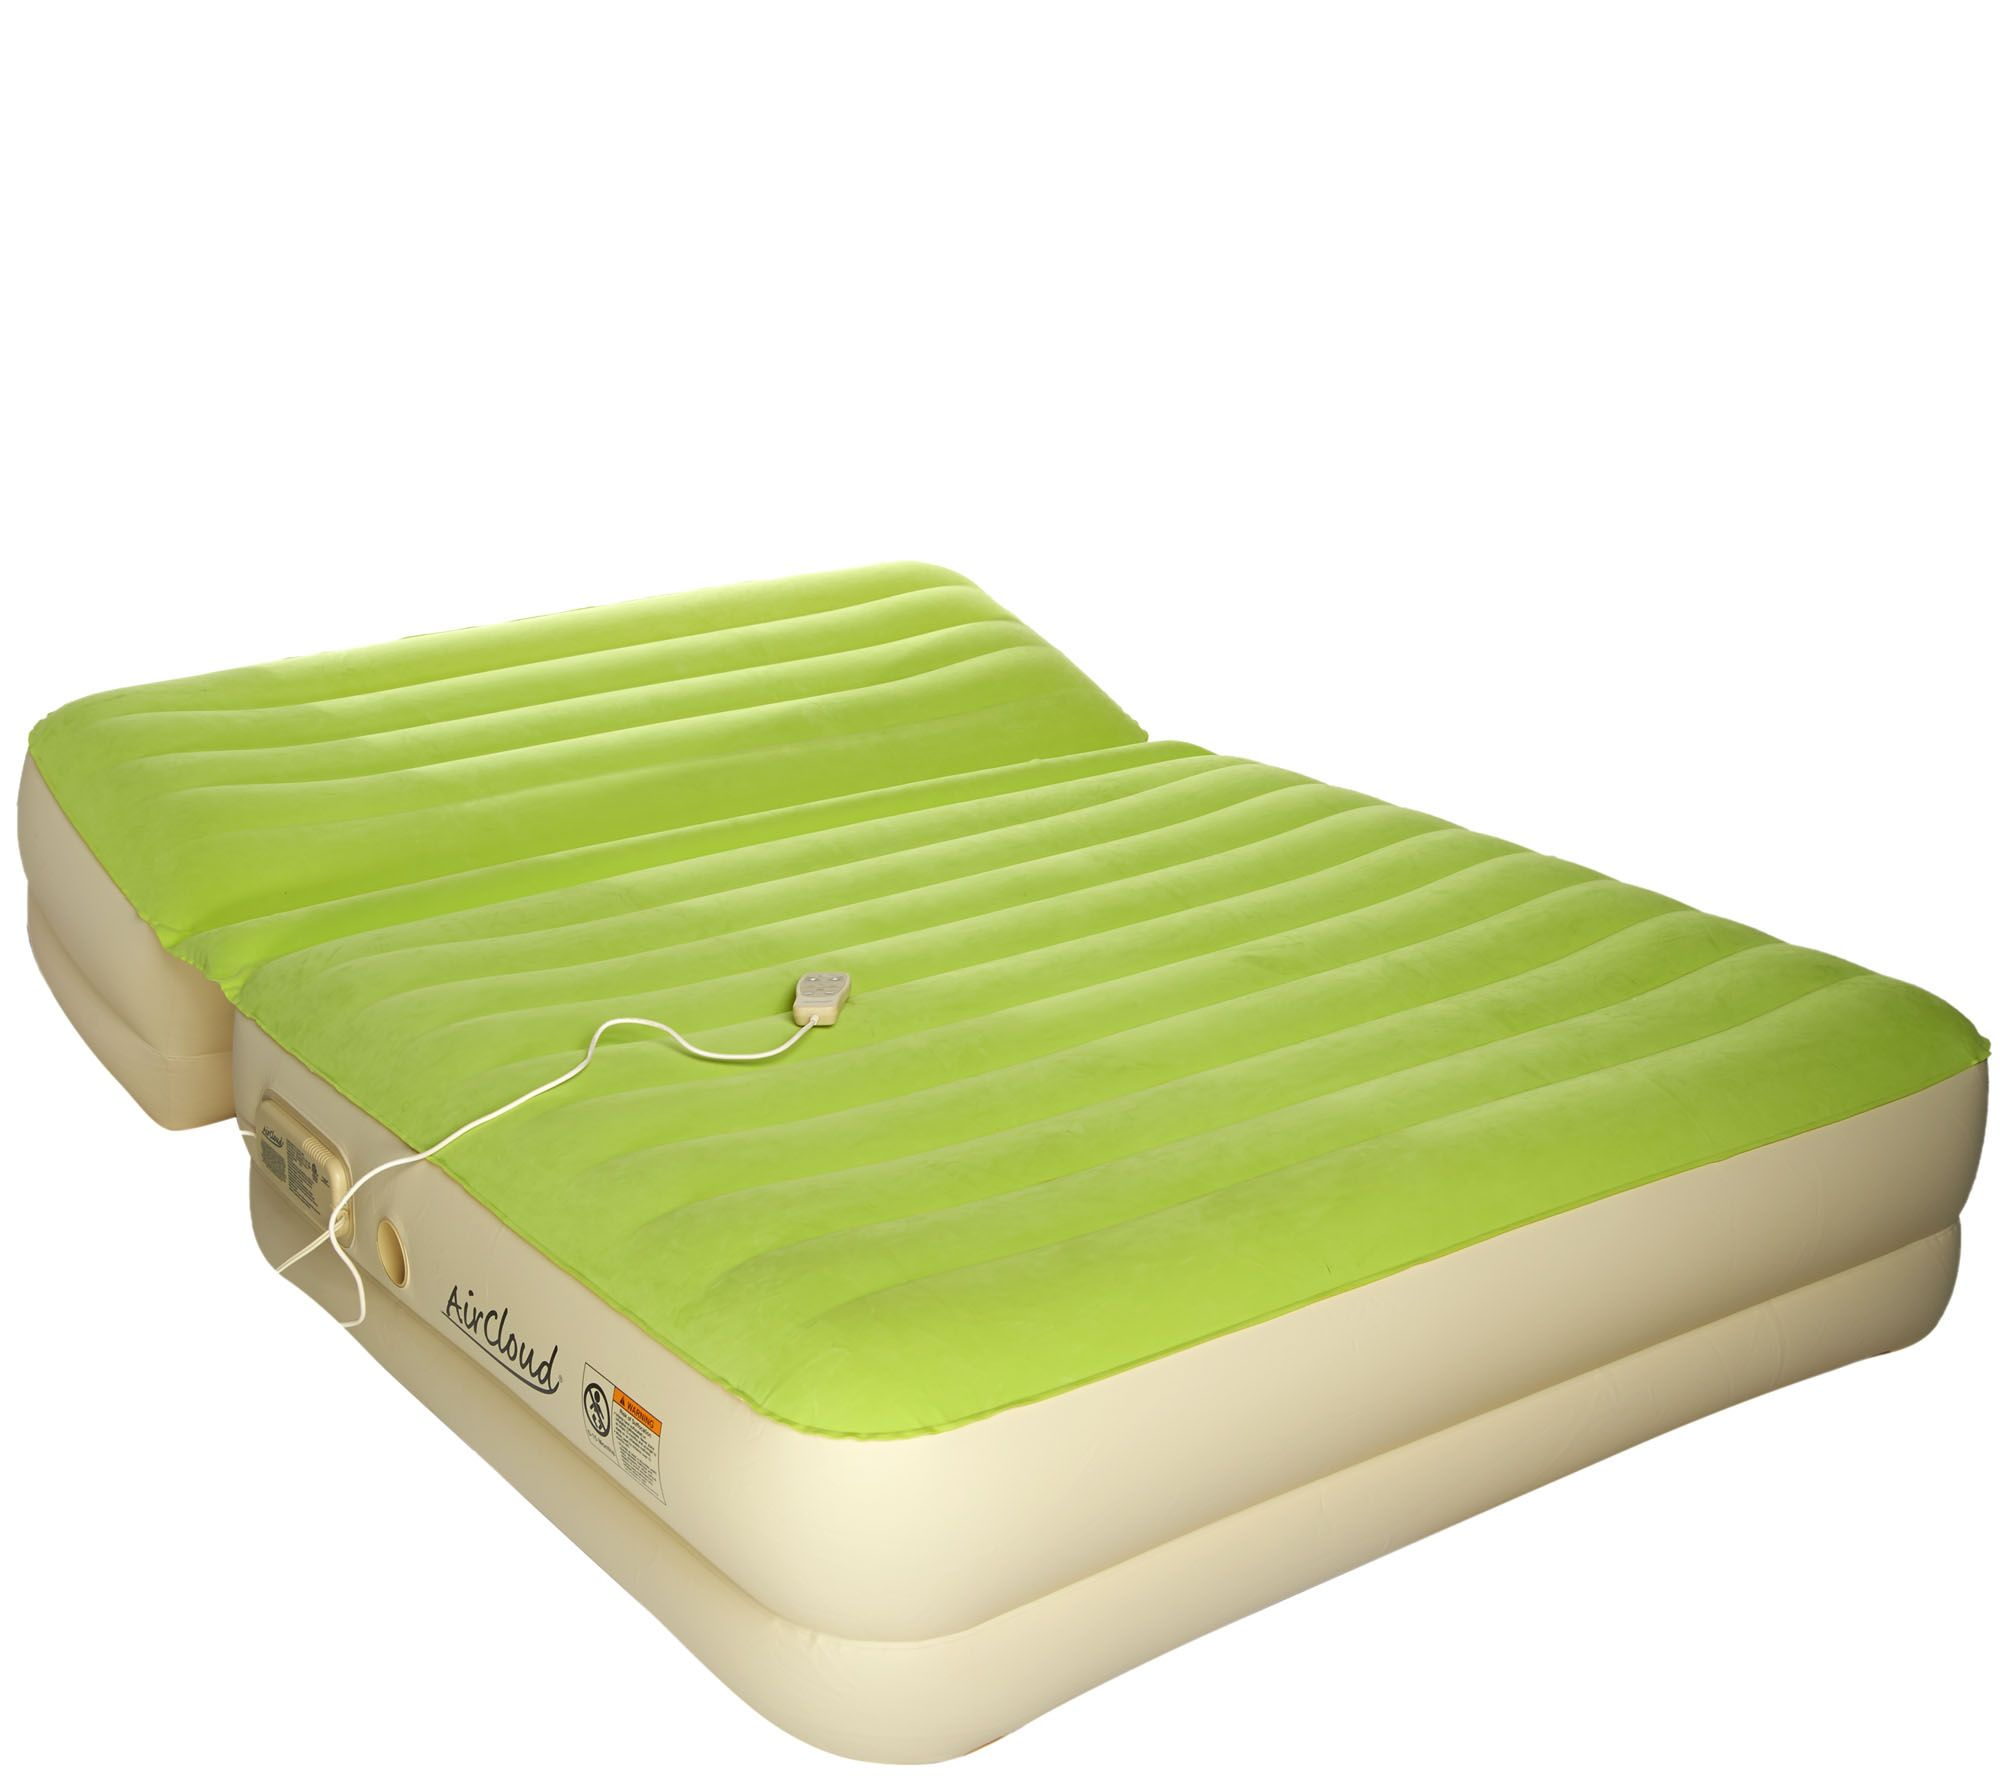 classic mattress aerobed home amazon kitchen dp queen beds inflatable com air bed